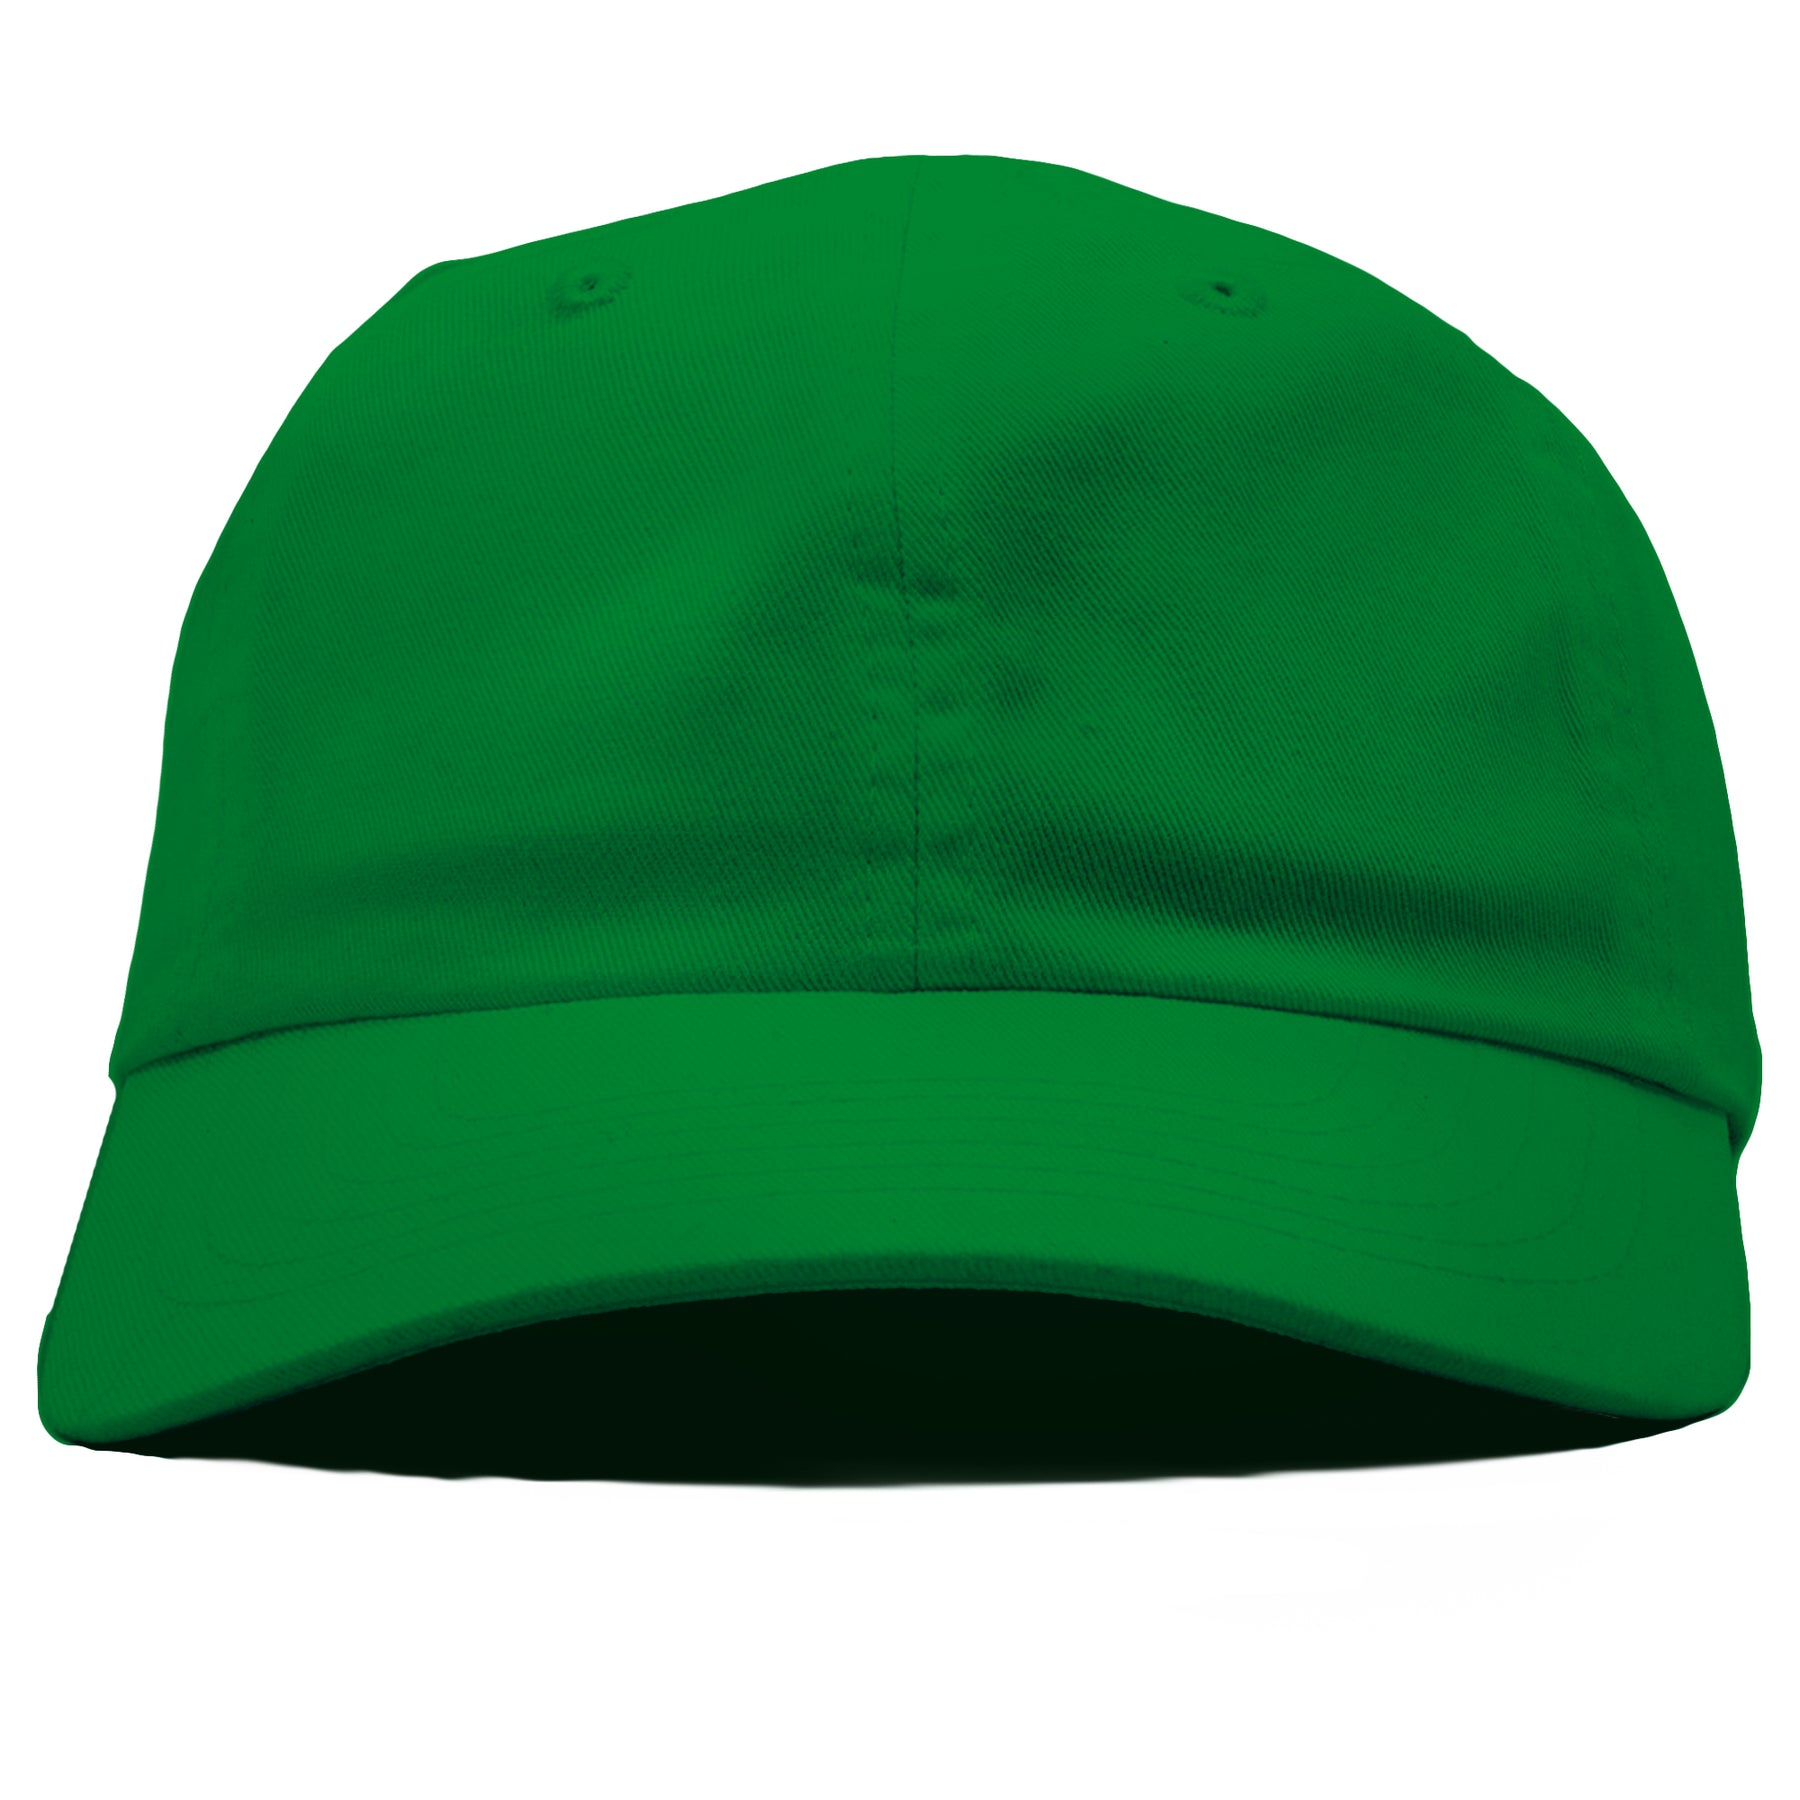 The blank kelly green dad hat has no design on the front 259b3184f900